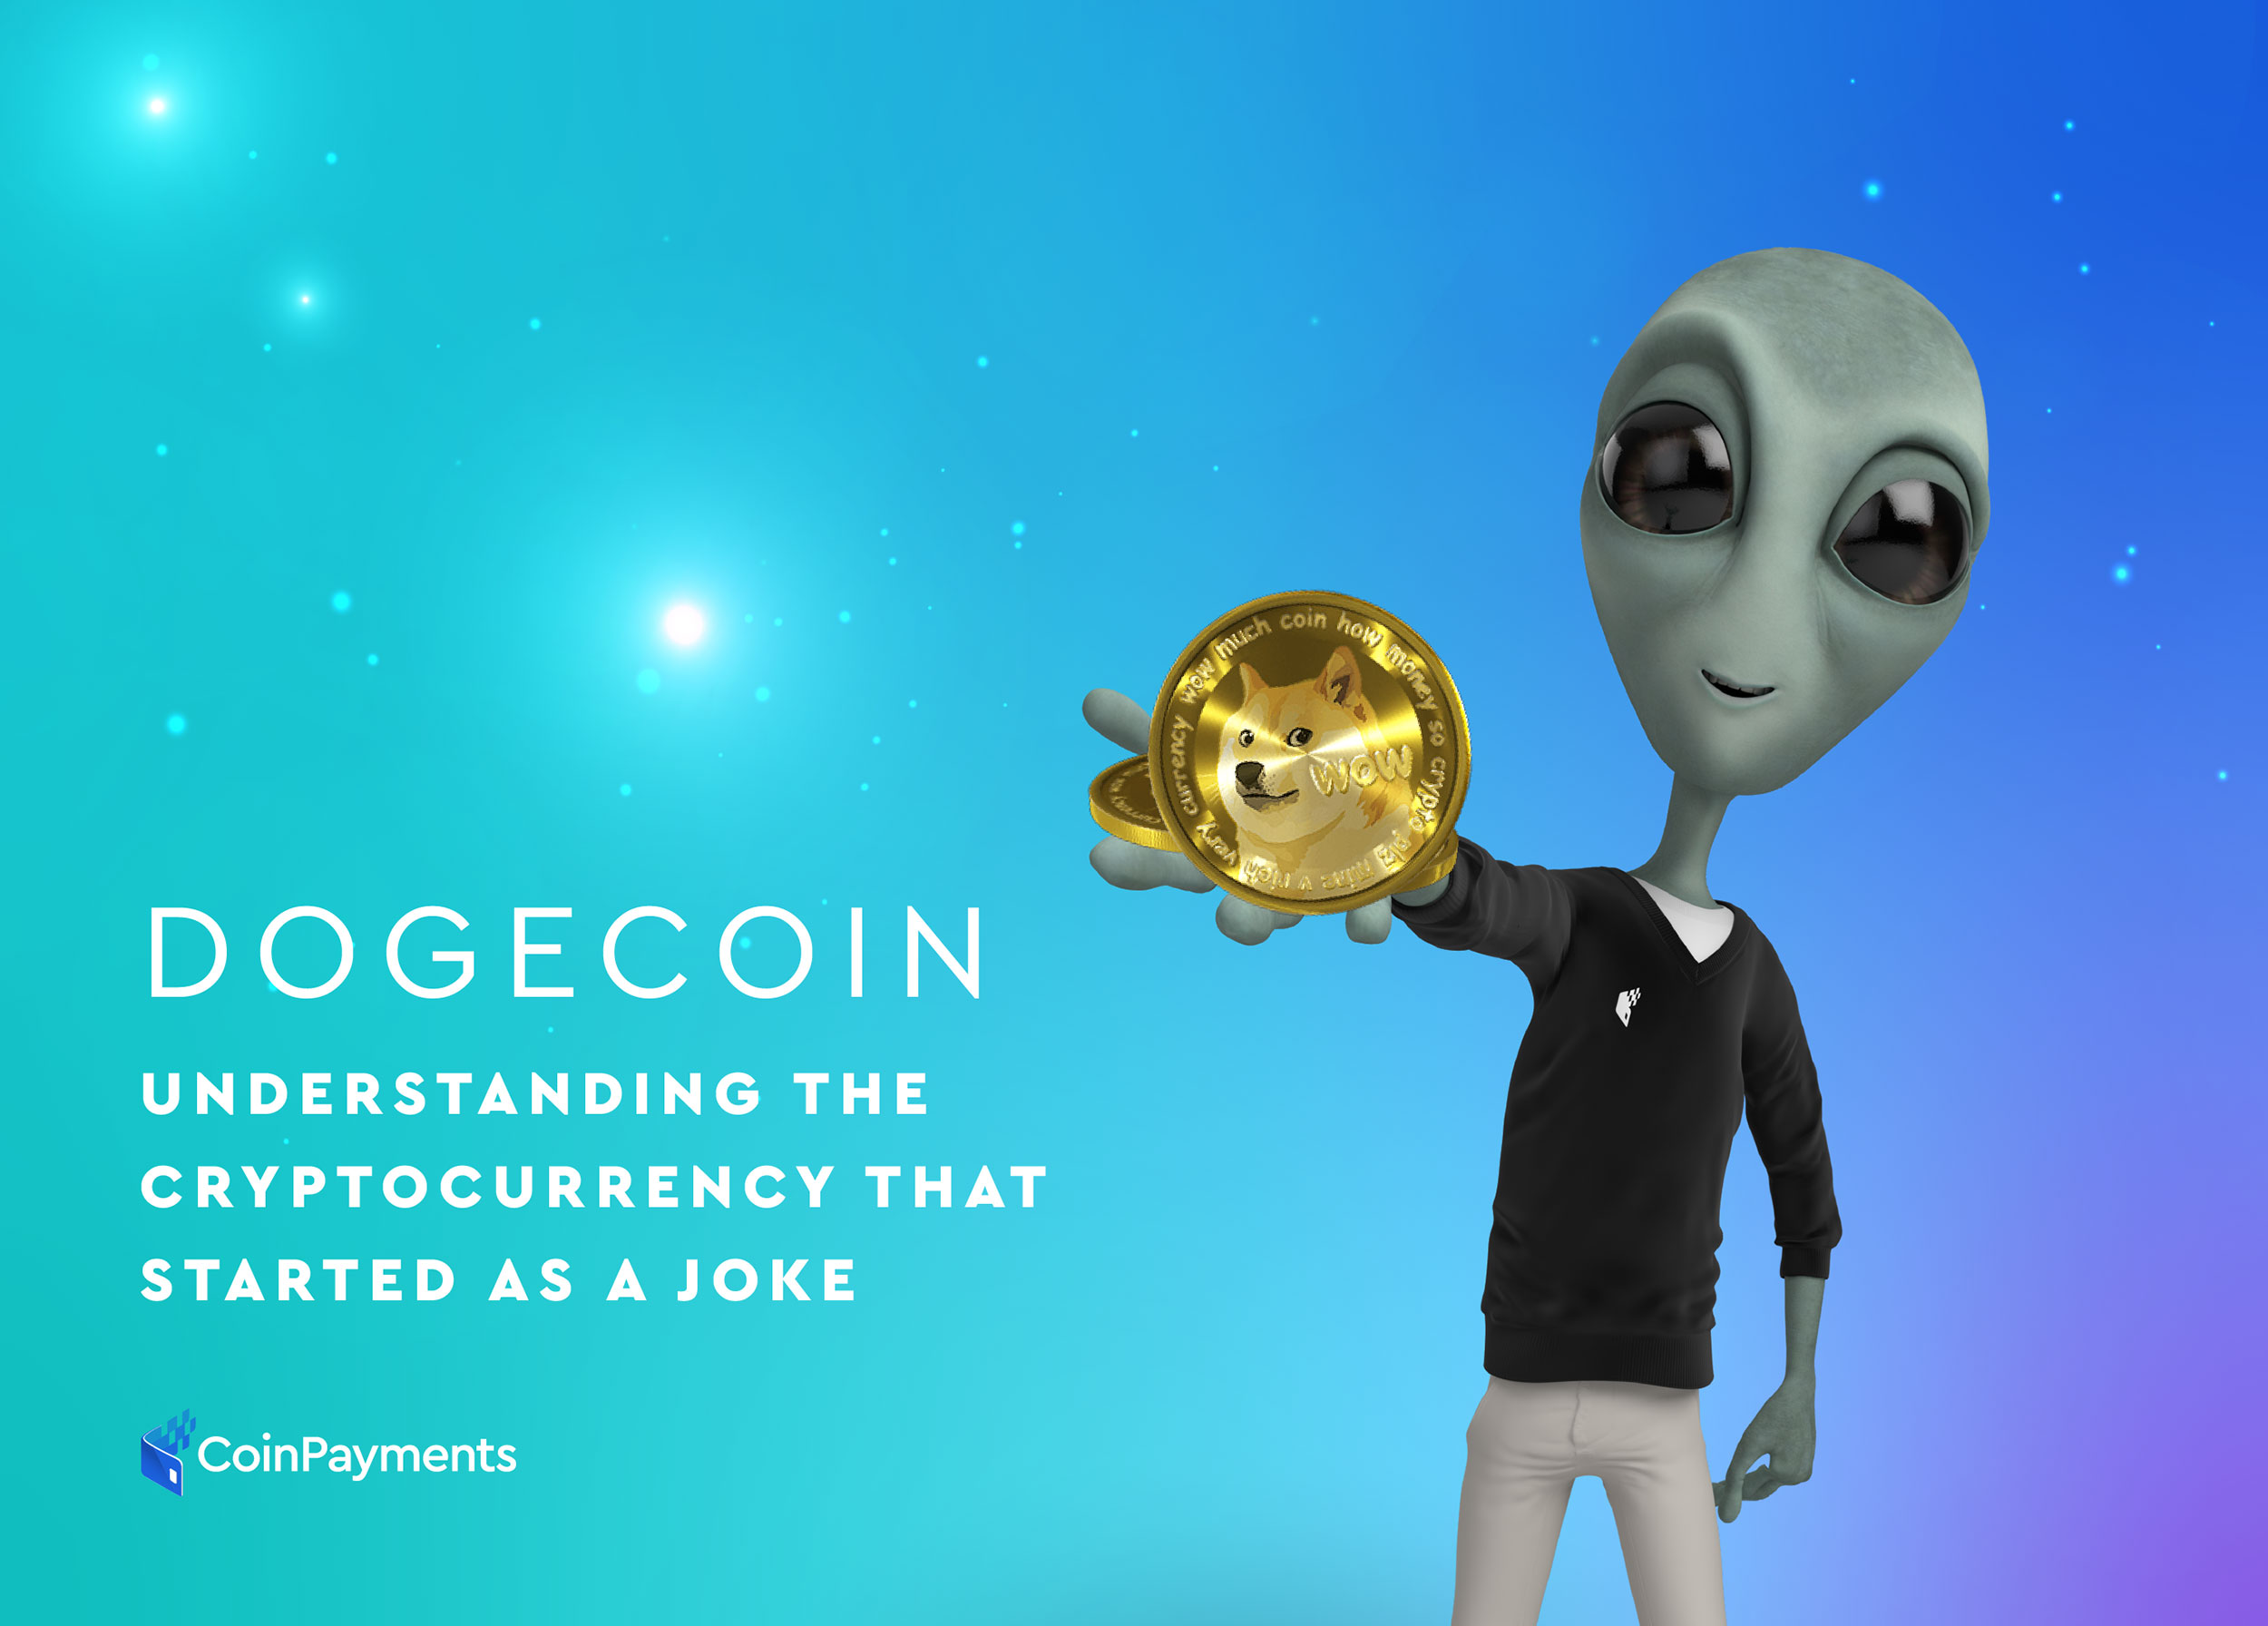 CoinPayments - Understand Cryptocurrency That Started As A Joke